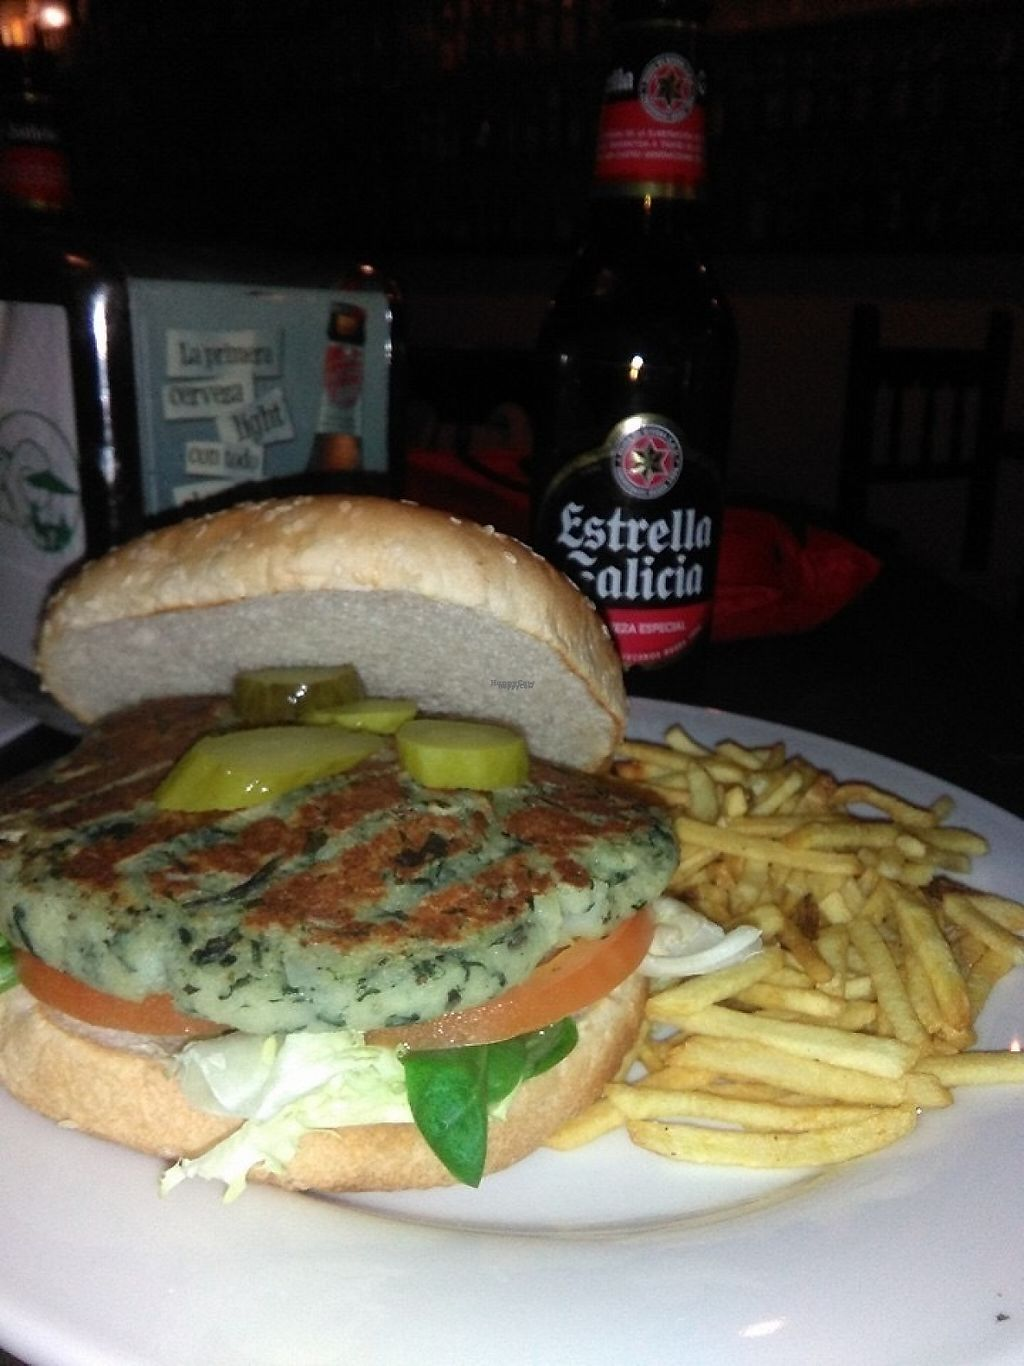 """Photo of Bar La Cueva  by <a href=""""/members/profile/Kukiaries"""">Kukiaries</a> <br/>Hamburguesa de espinacas <br/> March 24, 2017  - <a href='/contact/abuse/image/89037/240188'>Report</a>"""